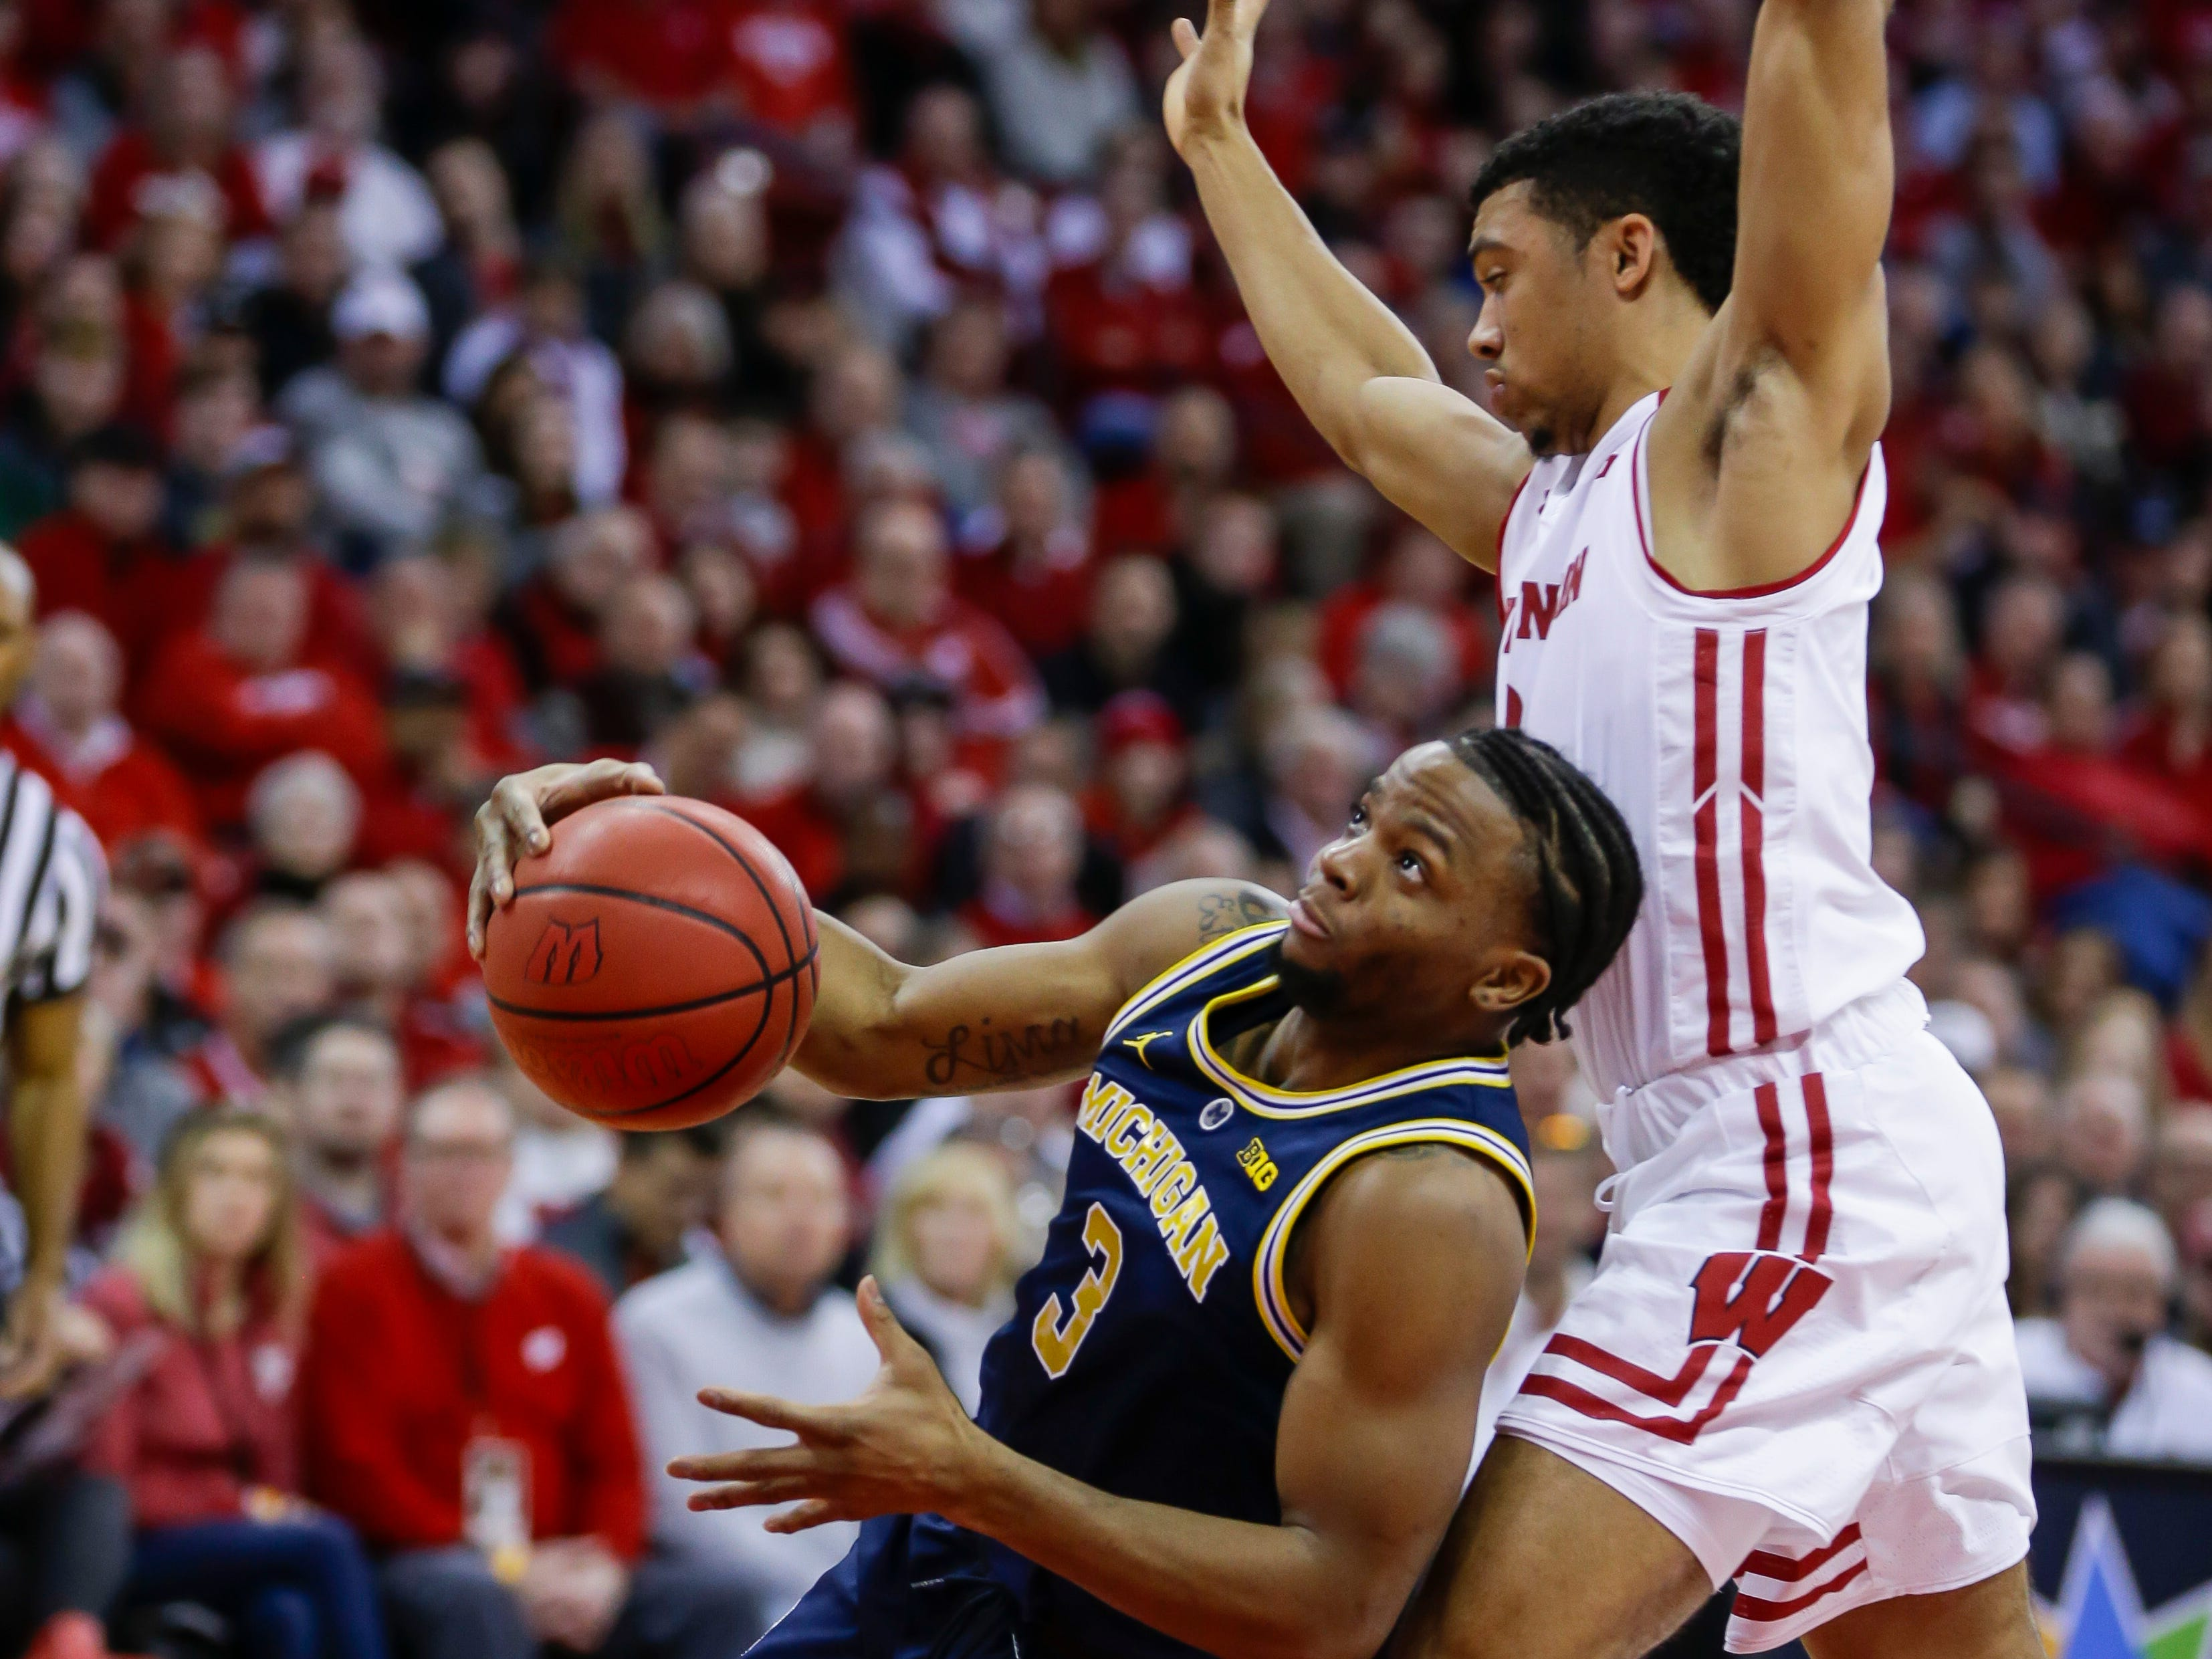 Michigan's Zavier Simpson slips while driving against Wisconsin's D'Mitrik Trice on Saturday, Jan. 19, 2019, in Madison, Wis.